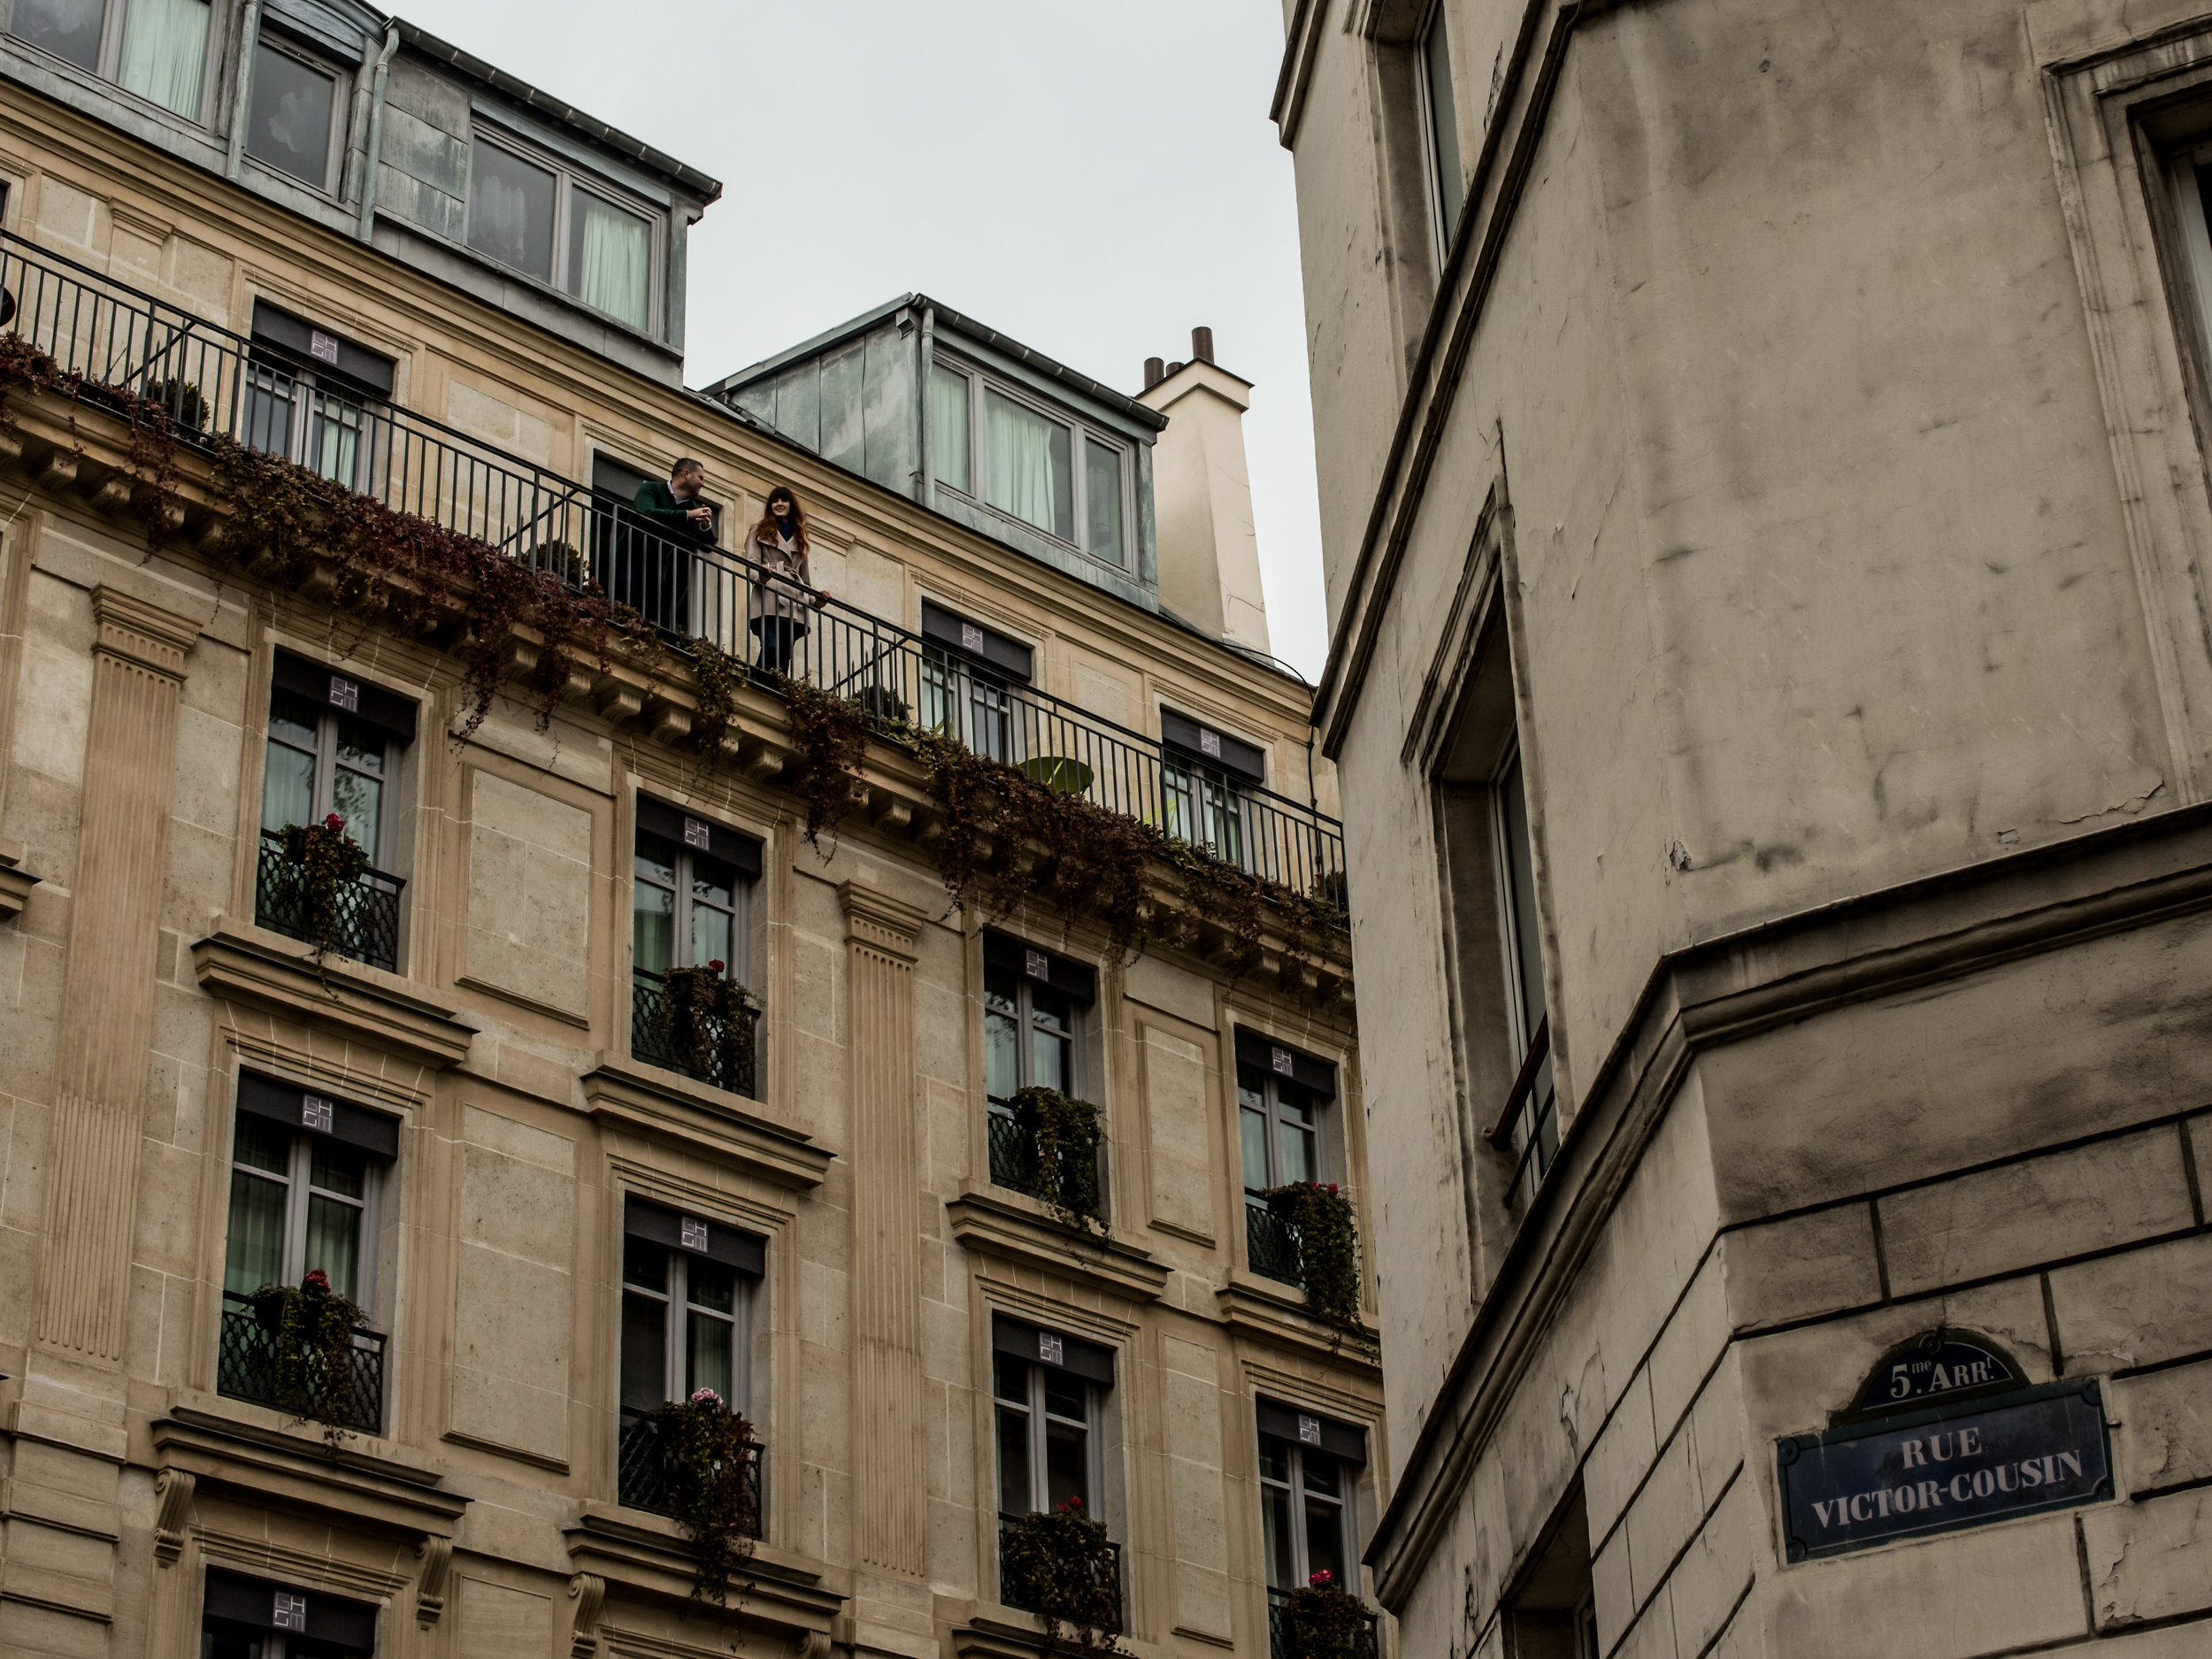 Our hotel in Paris...that we didn't pay for.